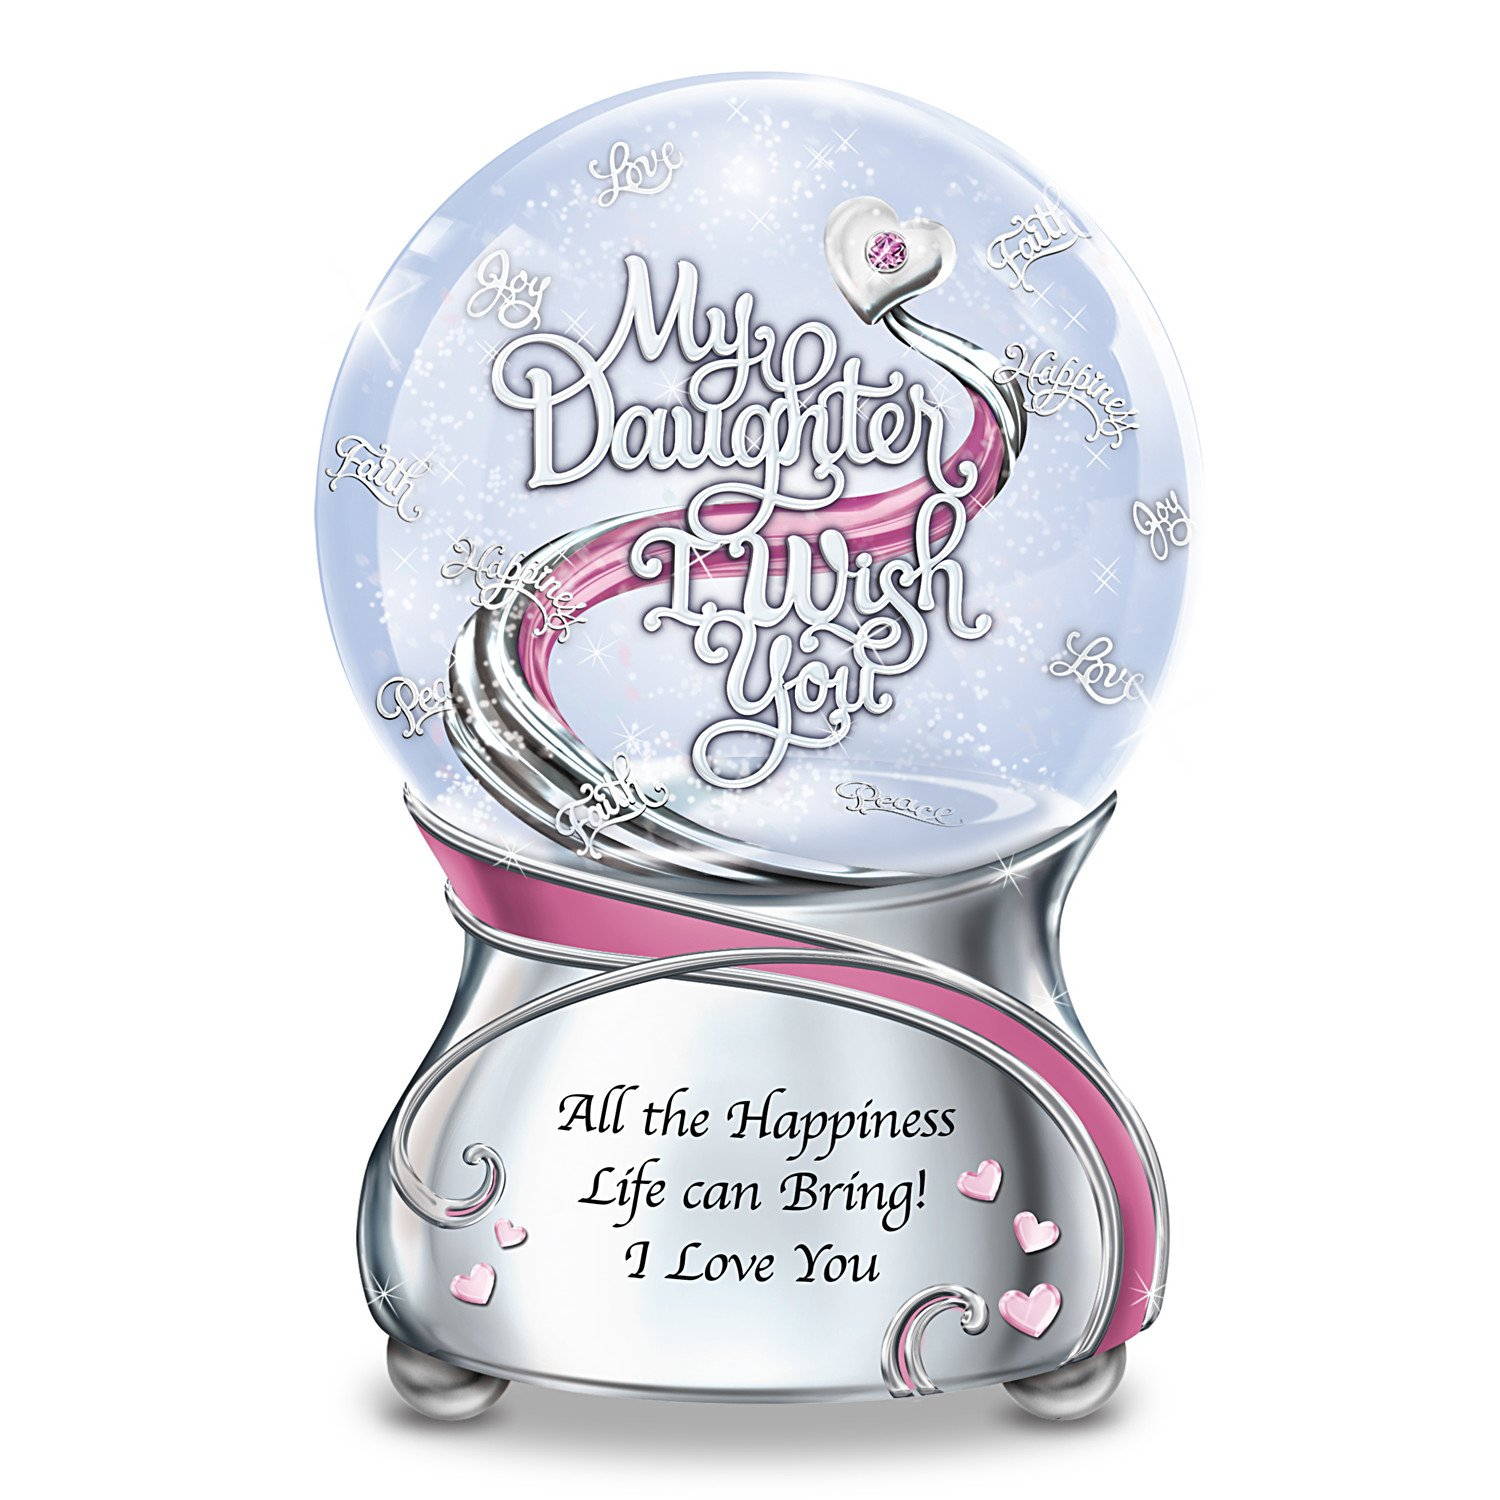 My Daughter, I Wish You Musical Glitter Snowglobe With Heart Charm And Swarovski Crystal by The Bradford Exchange